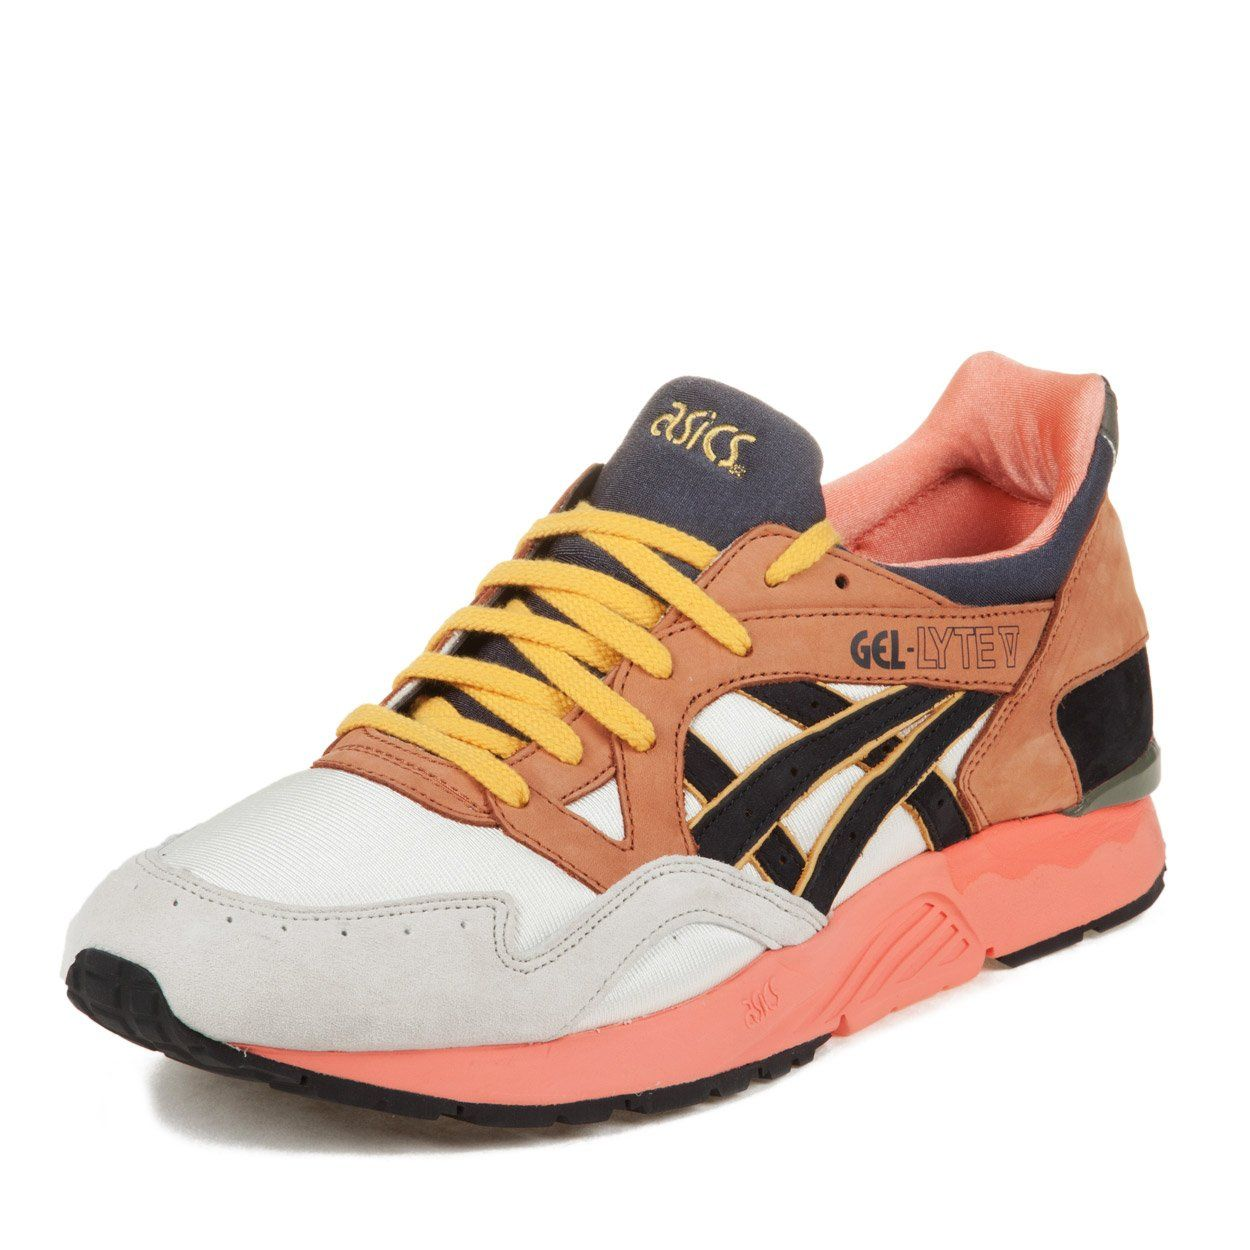 timeless design 9579d 10444 Amazon.com: Asics Mens Ubiq Gel-Lyte V